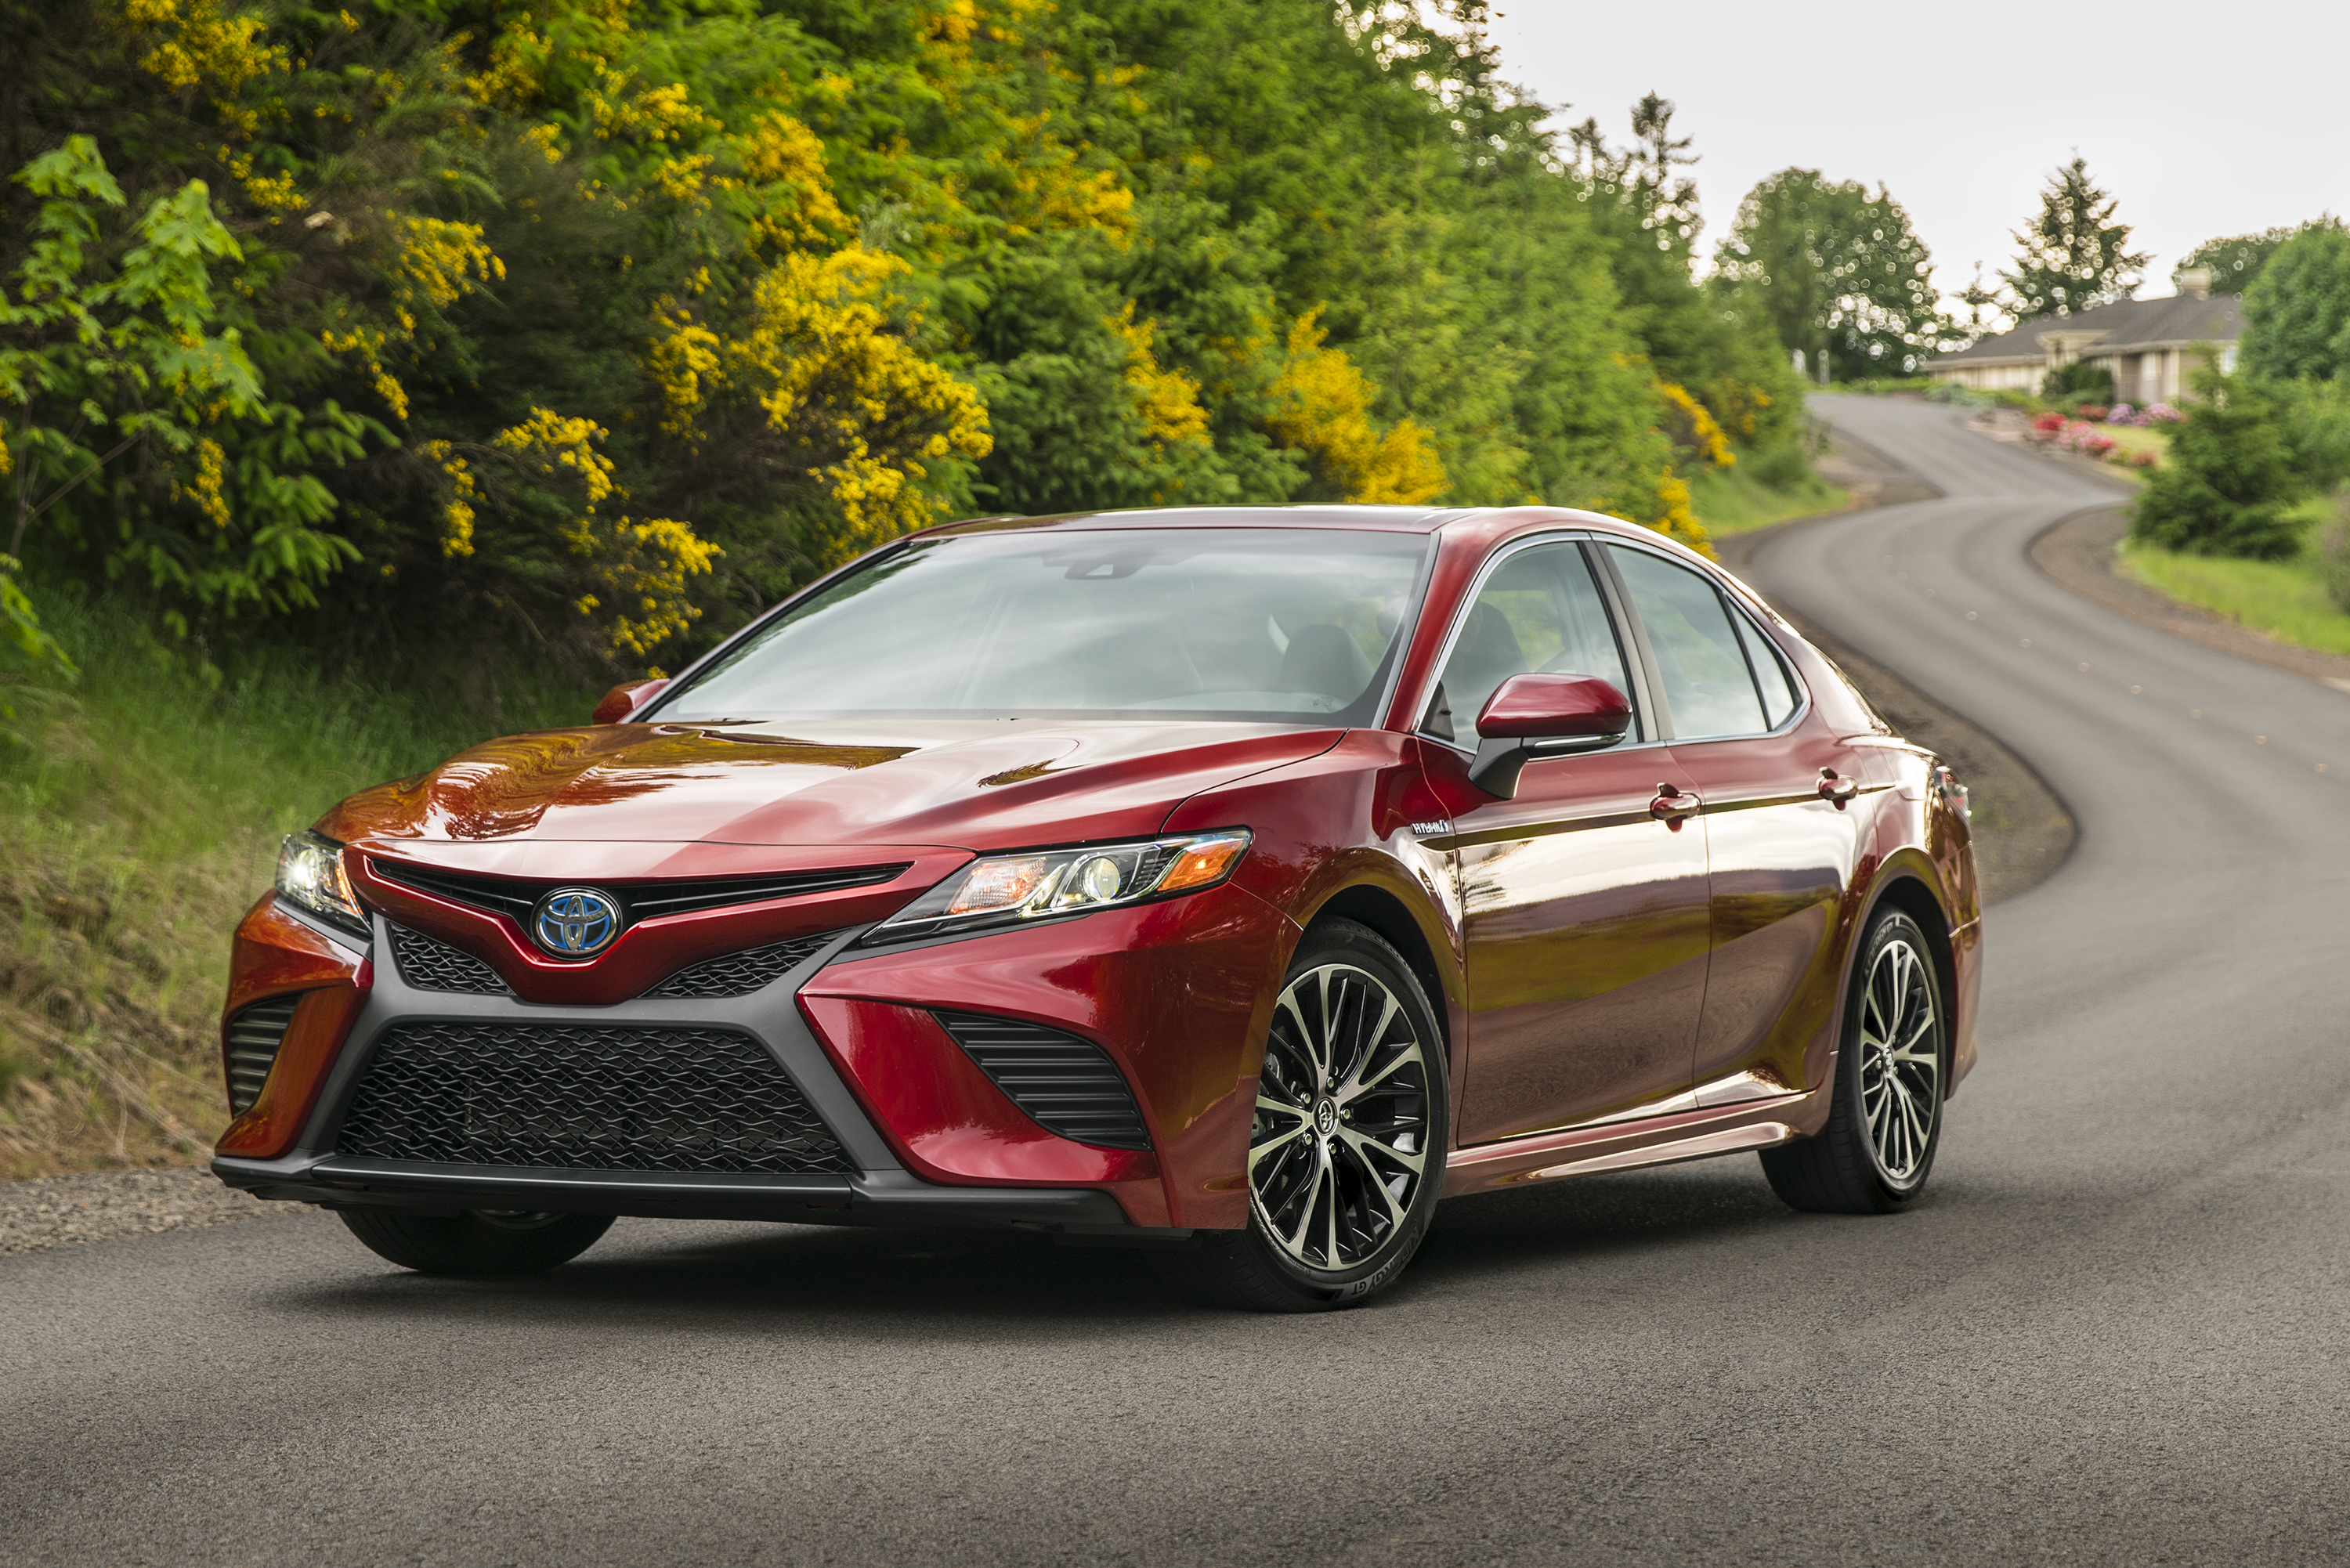 2018 Toyota Camry Hybrid Review: Not Your Mom's Toaster ...